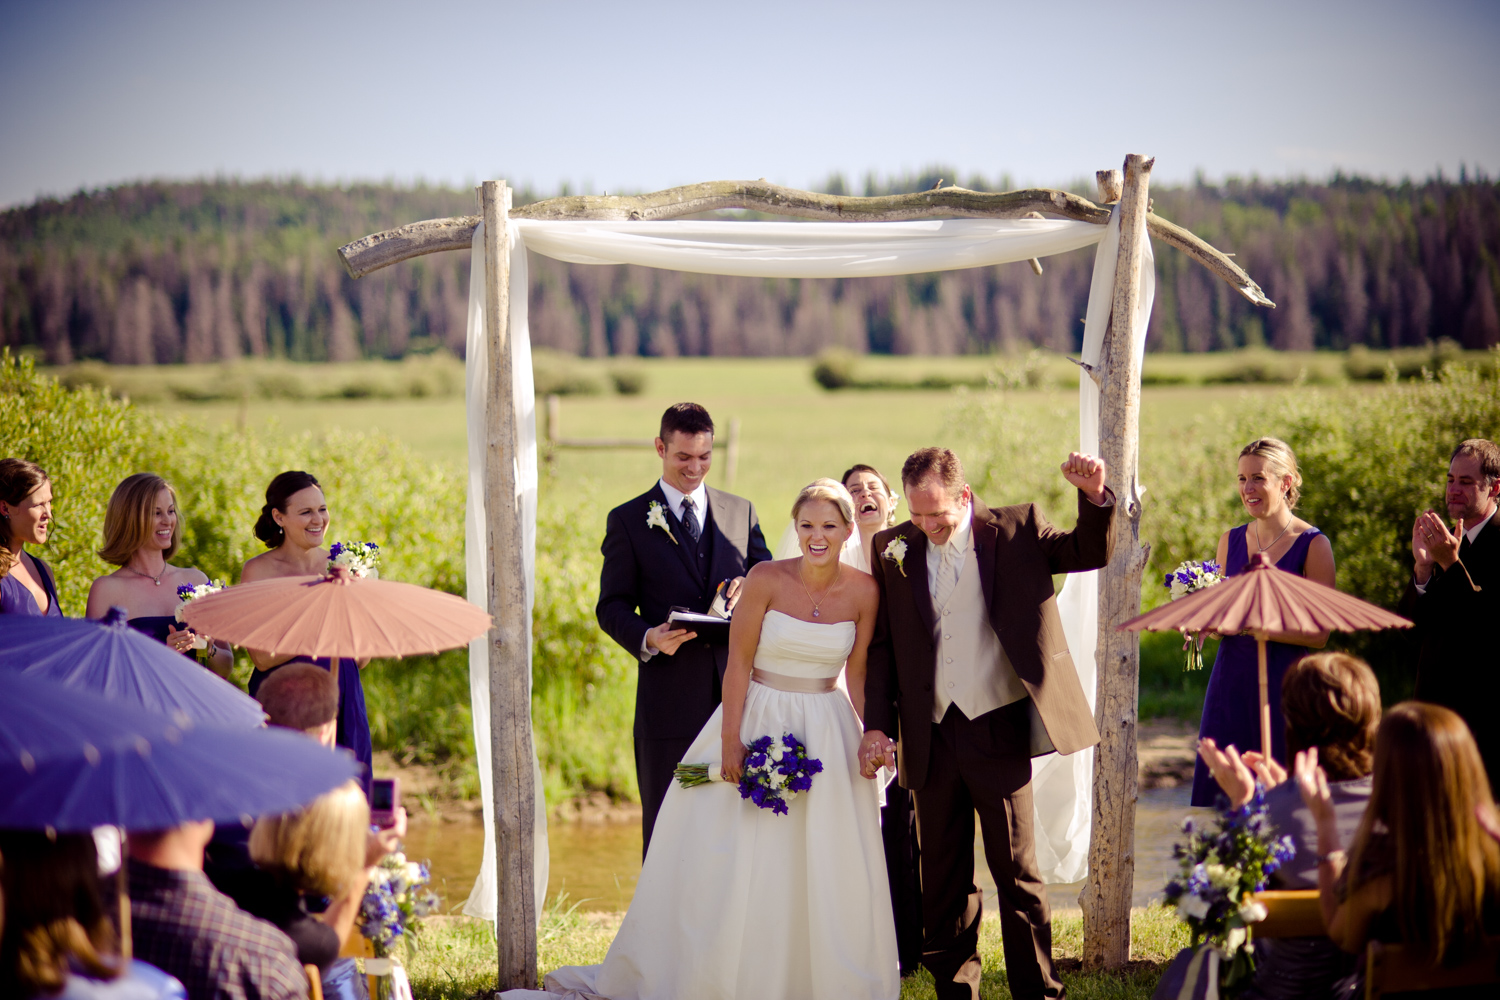 Steamboat_Springs_Wedding_054.JPG